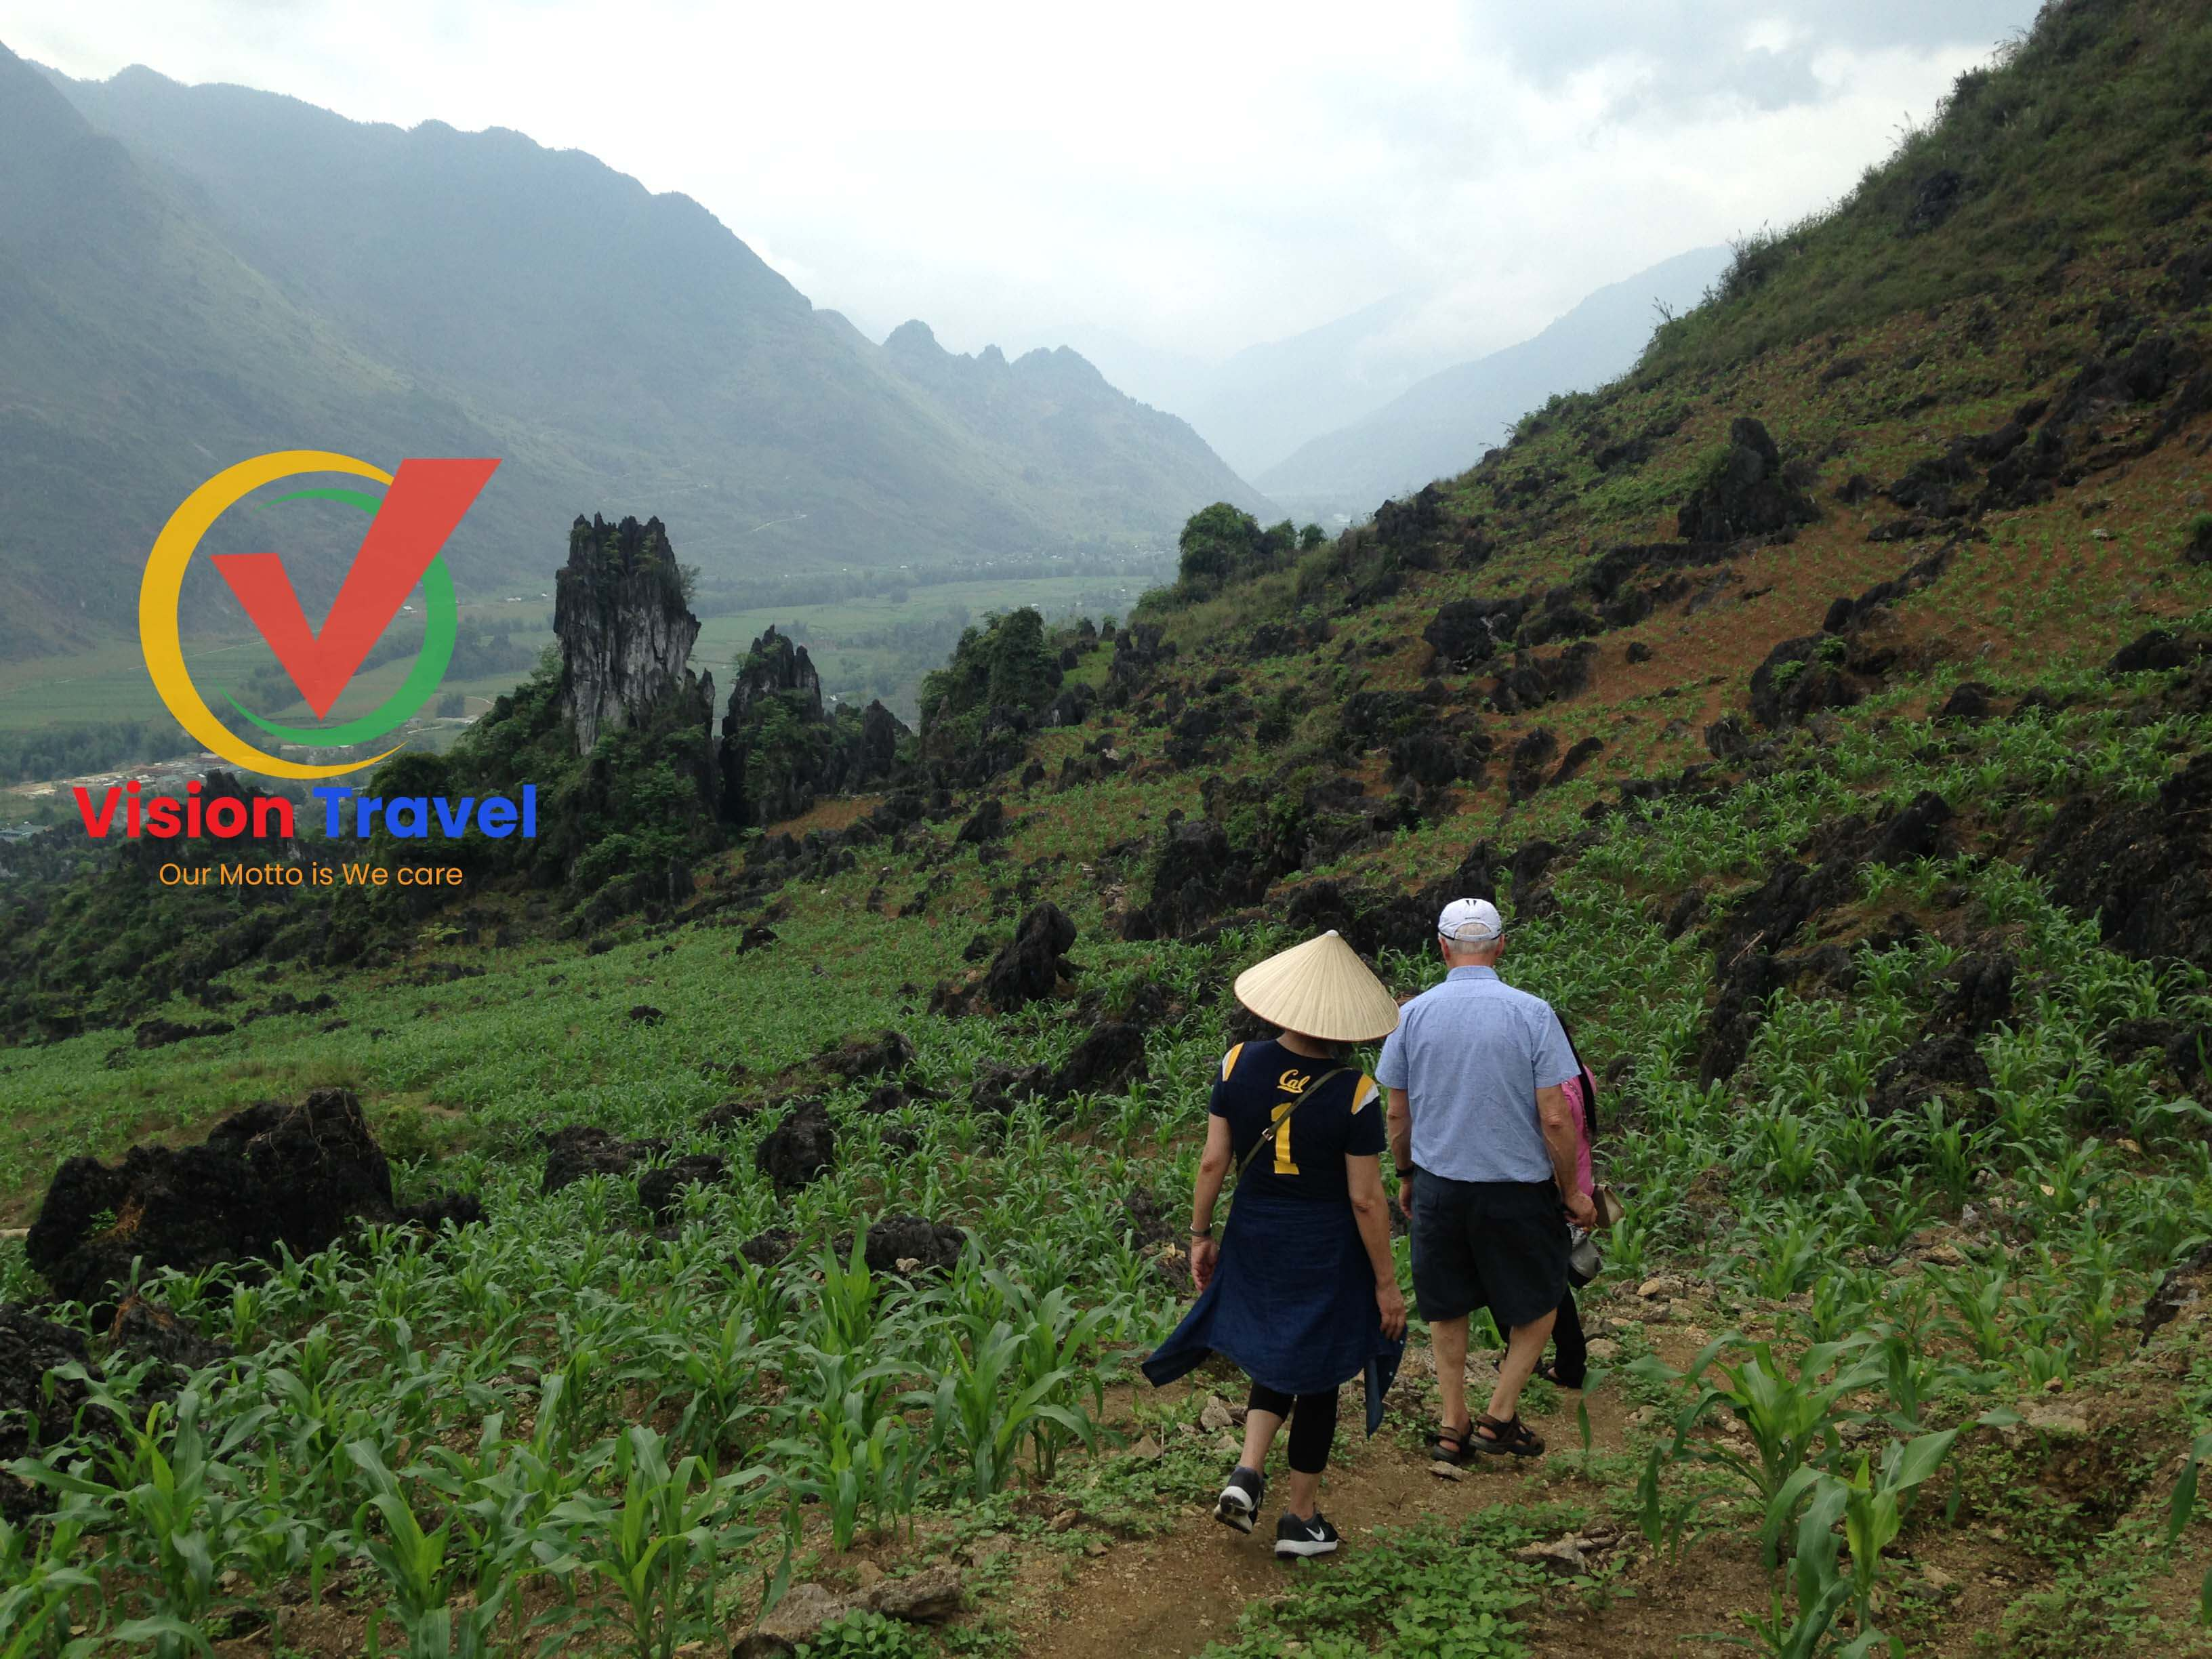 Nam Dam village - Lung Cu village6-day by vehicle Captivating Ha Giang tour (Home stay, Trekking, Market)